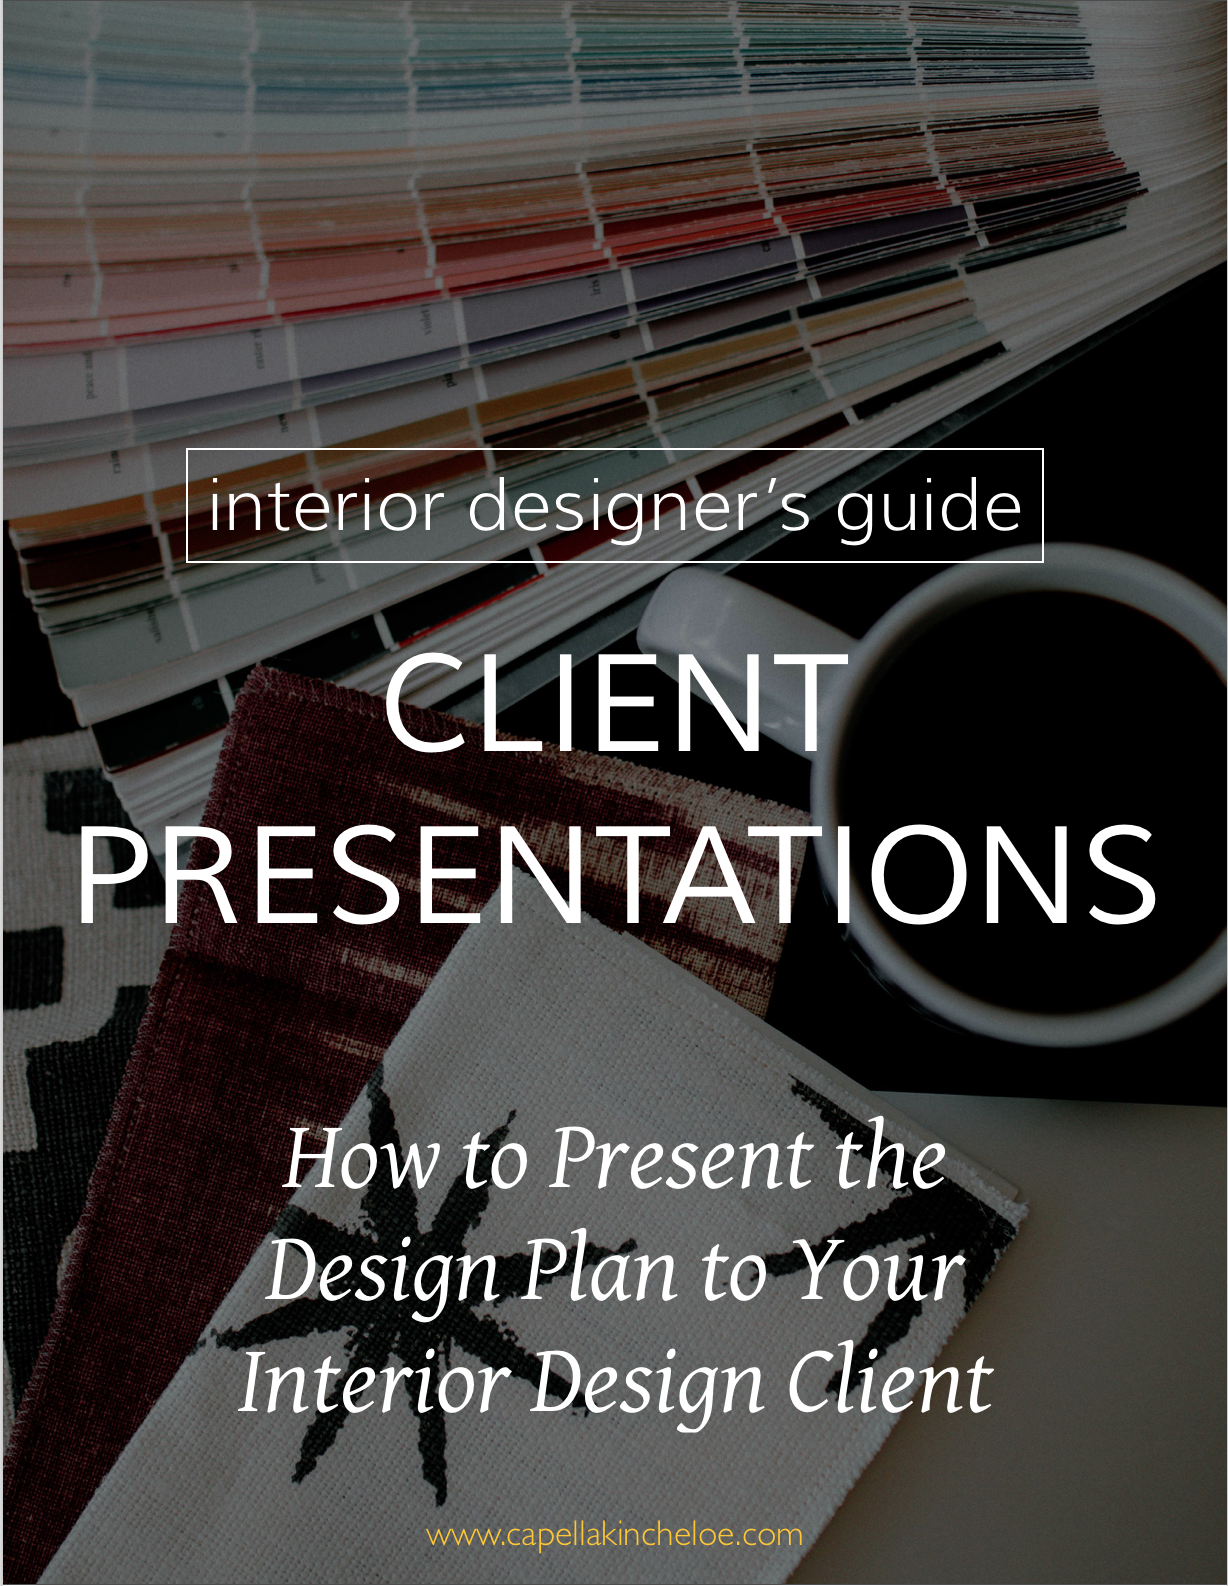 Feel confident and self-assure in how you present your design plan to clients.